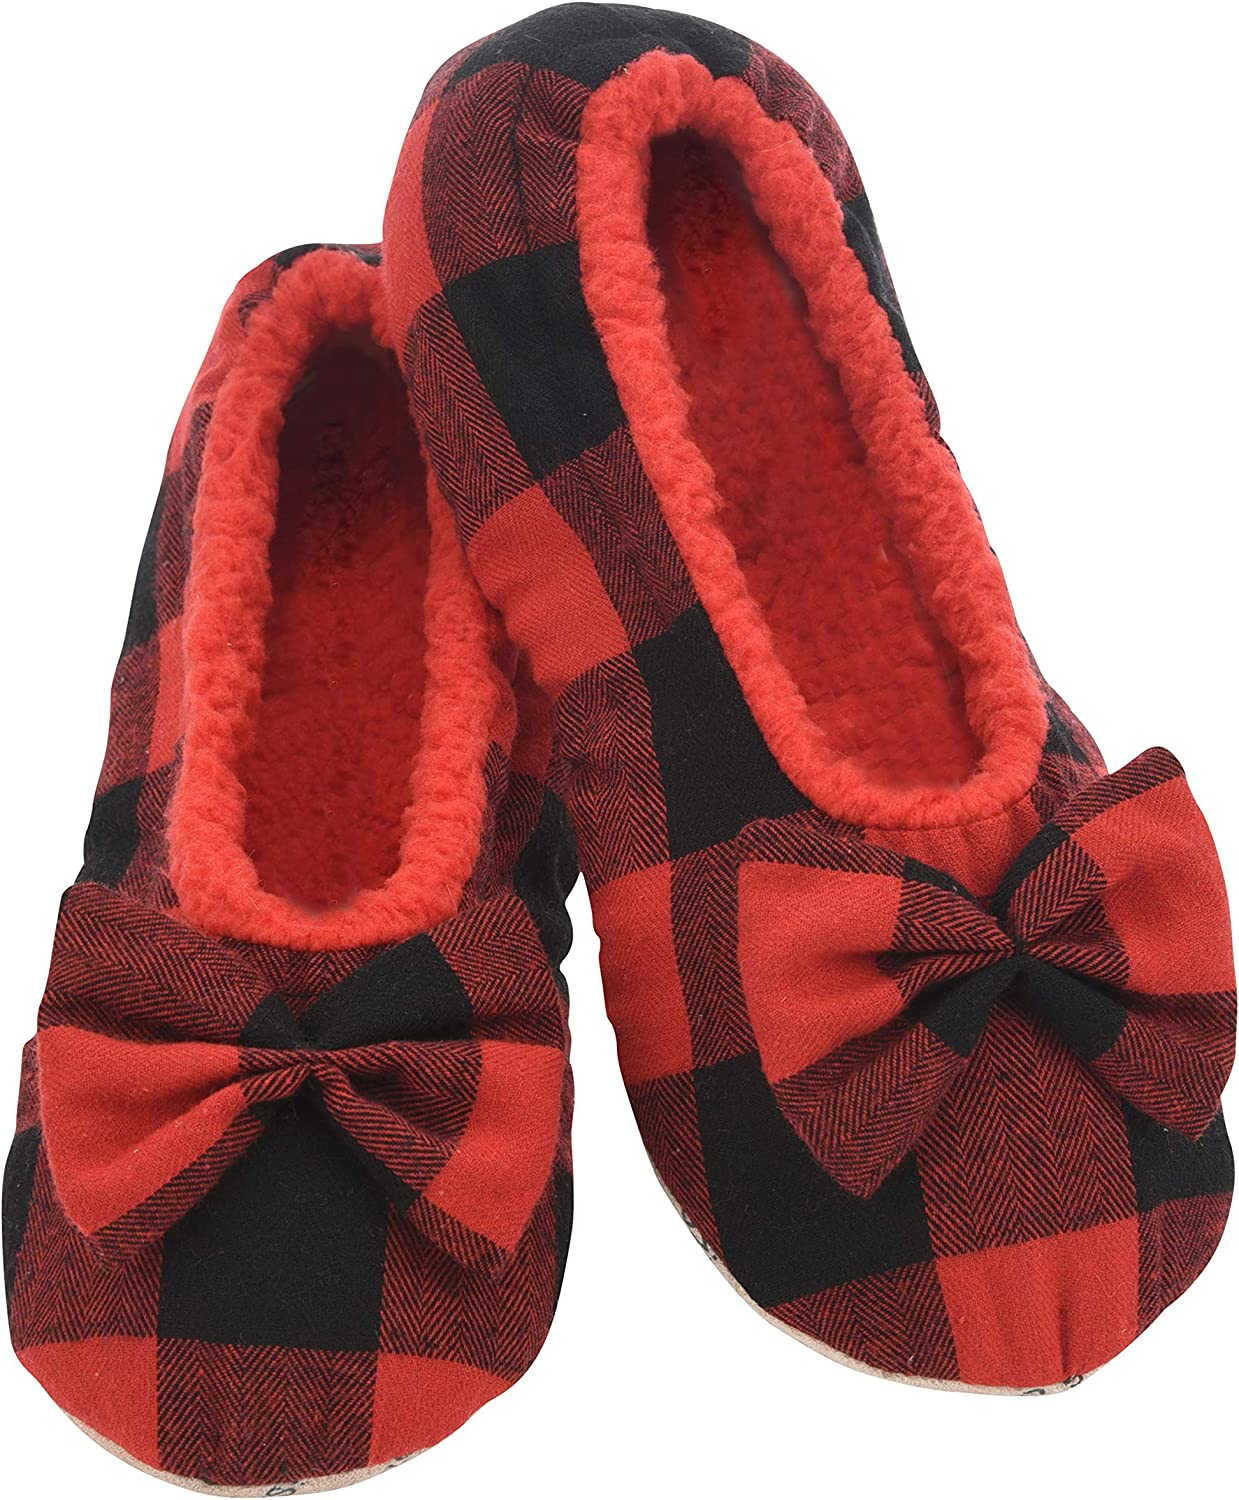 Snoozies Slumbies Slippers for Women Fuzzy House Slippers for Women Buffalo Plaid Ballerina Womens Slippers Lightweight Slippers